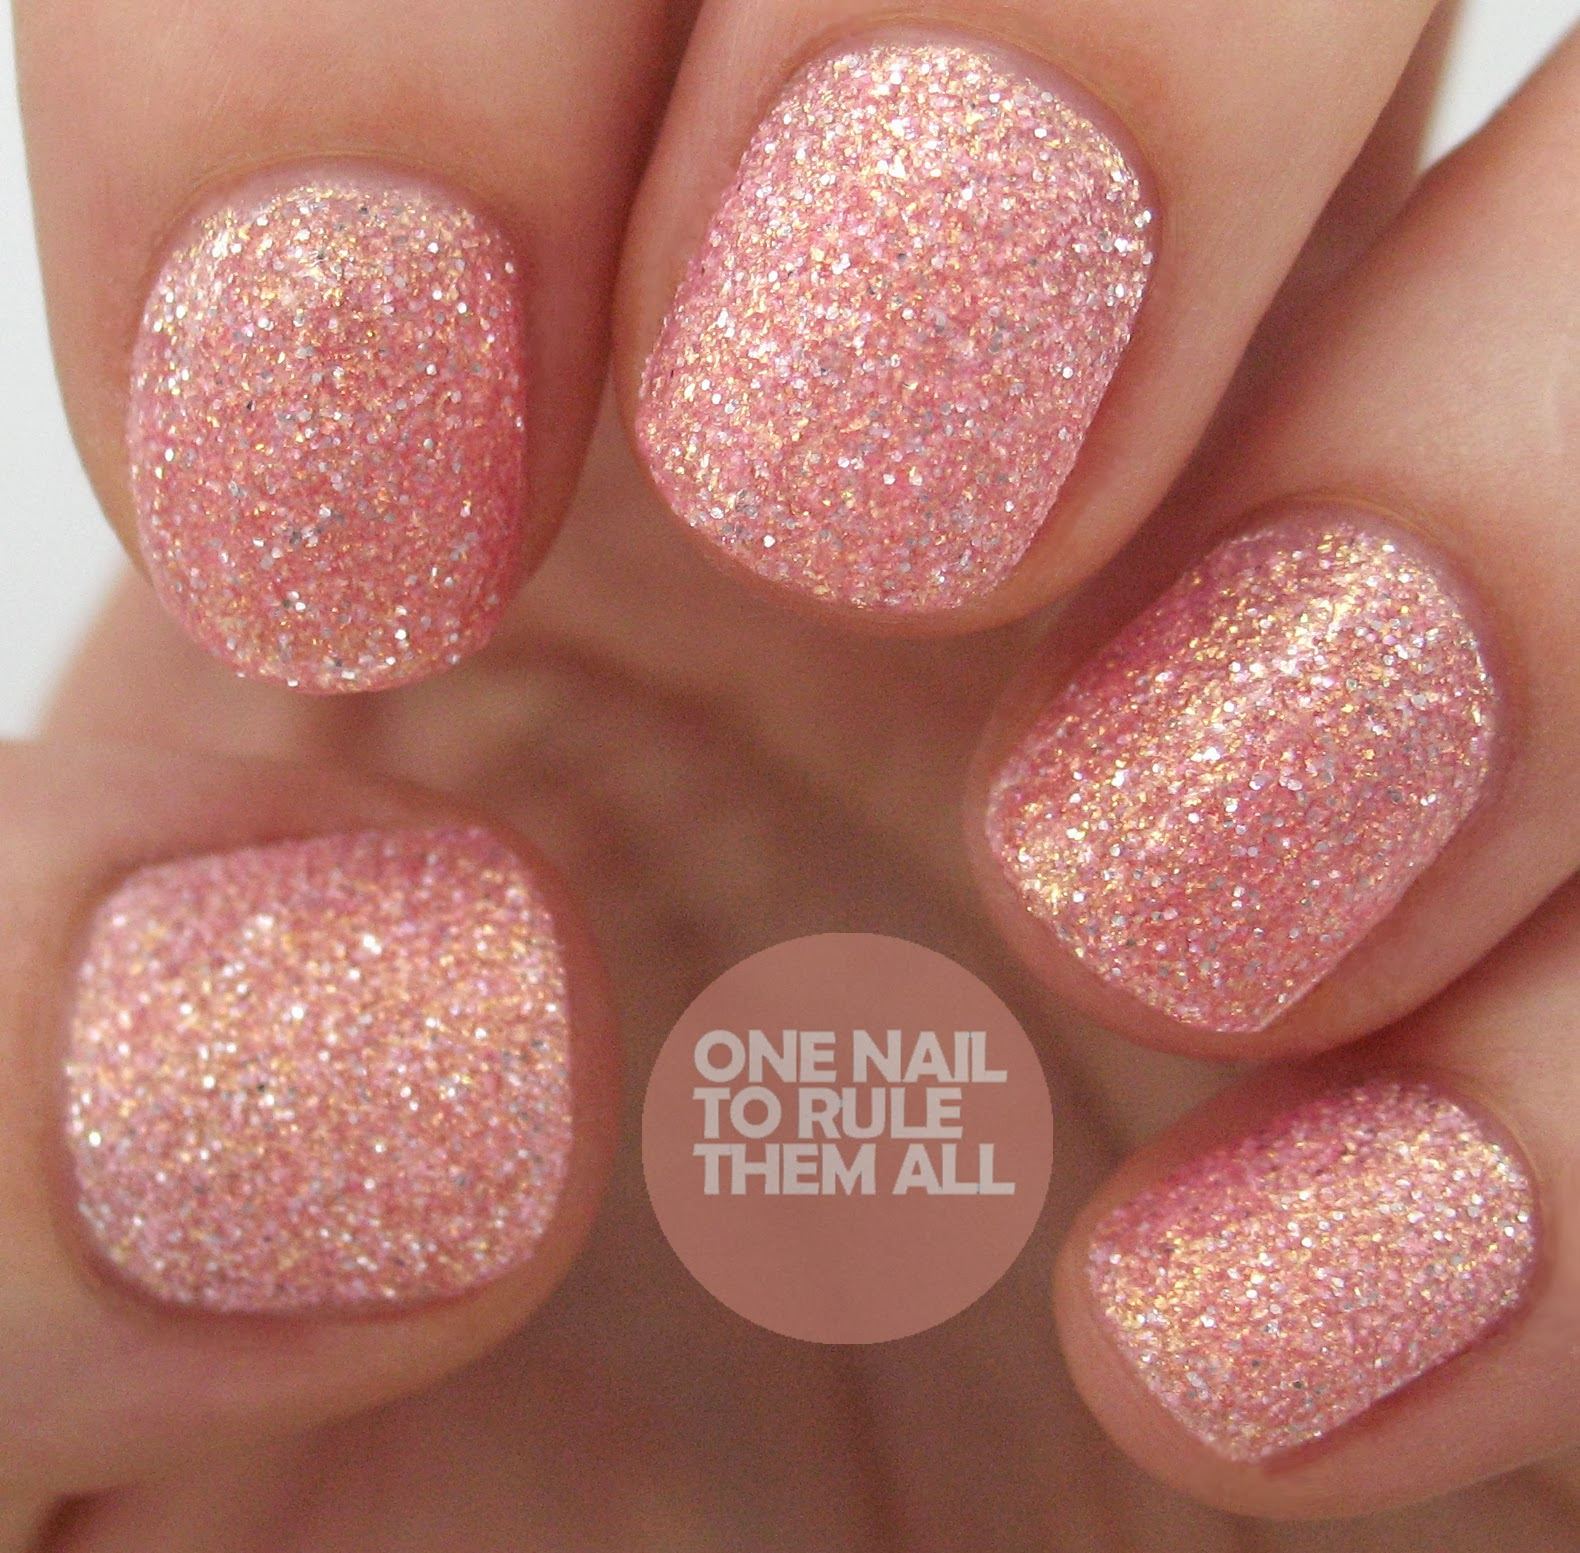 Pink And Blue Glitter Nail Polish: One Nail To Rule Them All: Barry M Autumn/Winter 2013